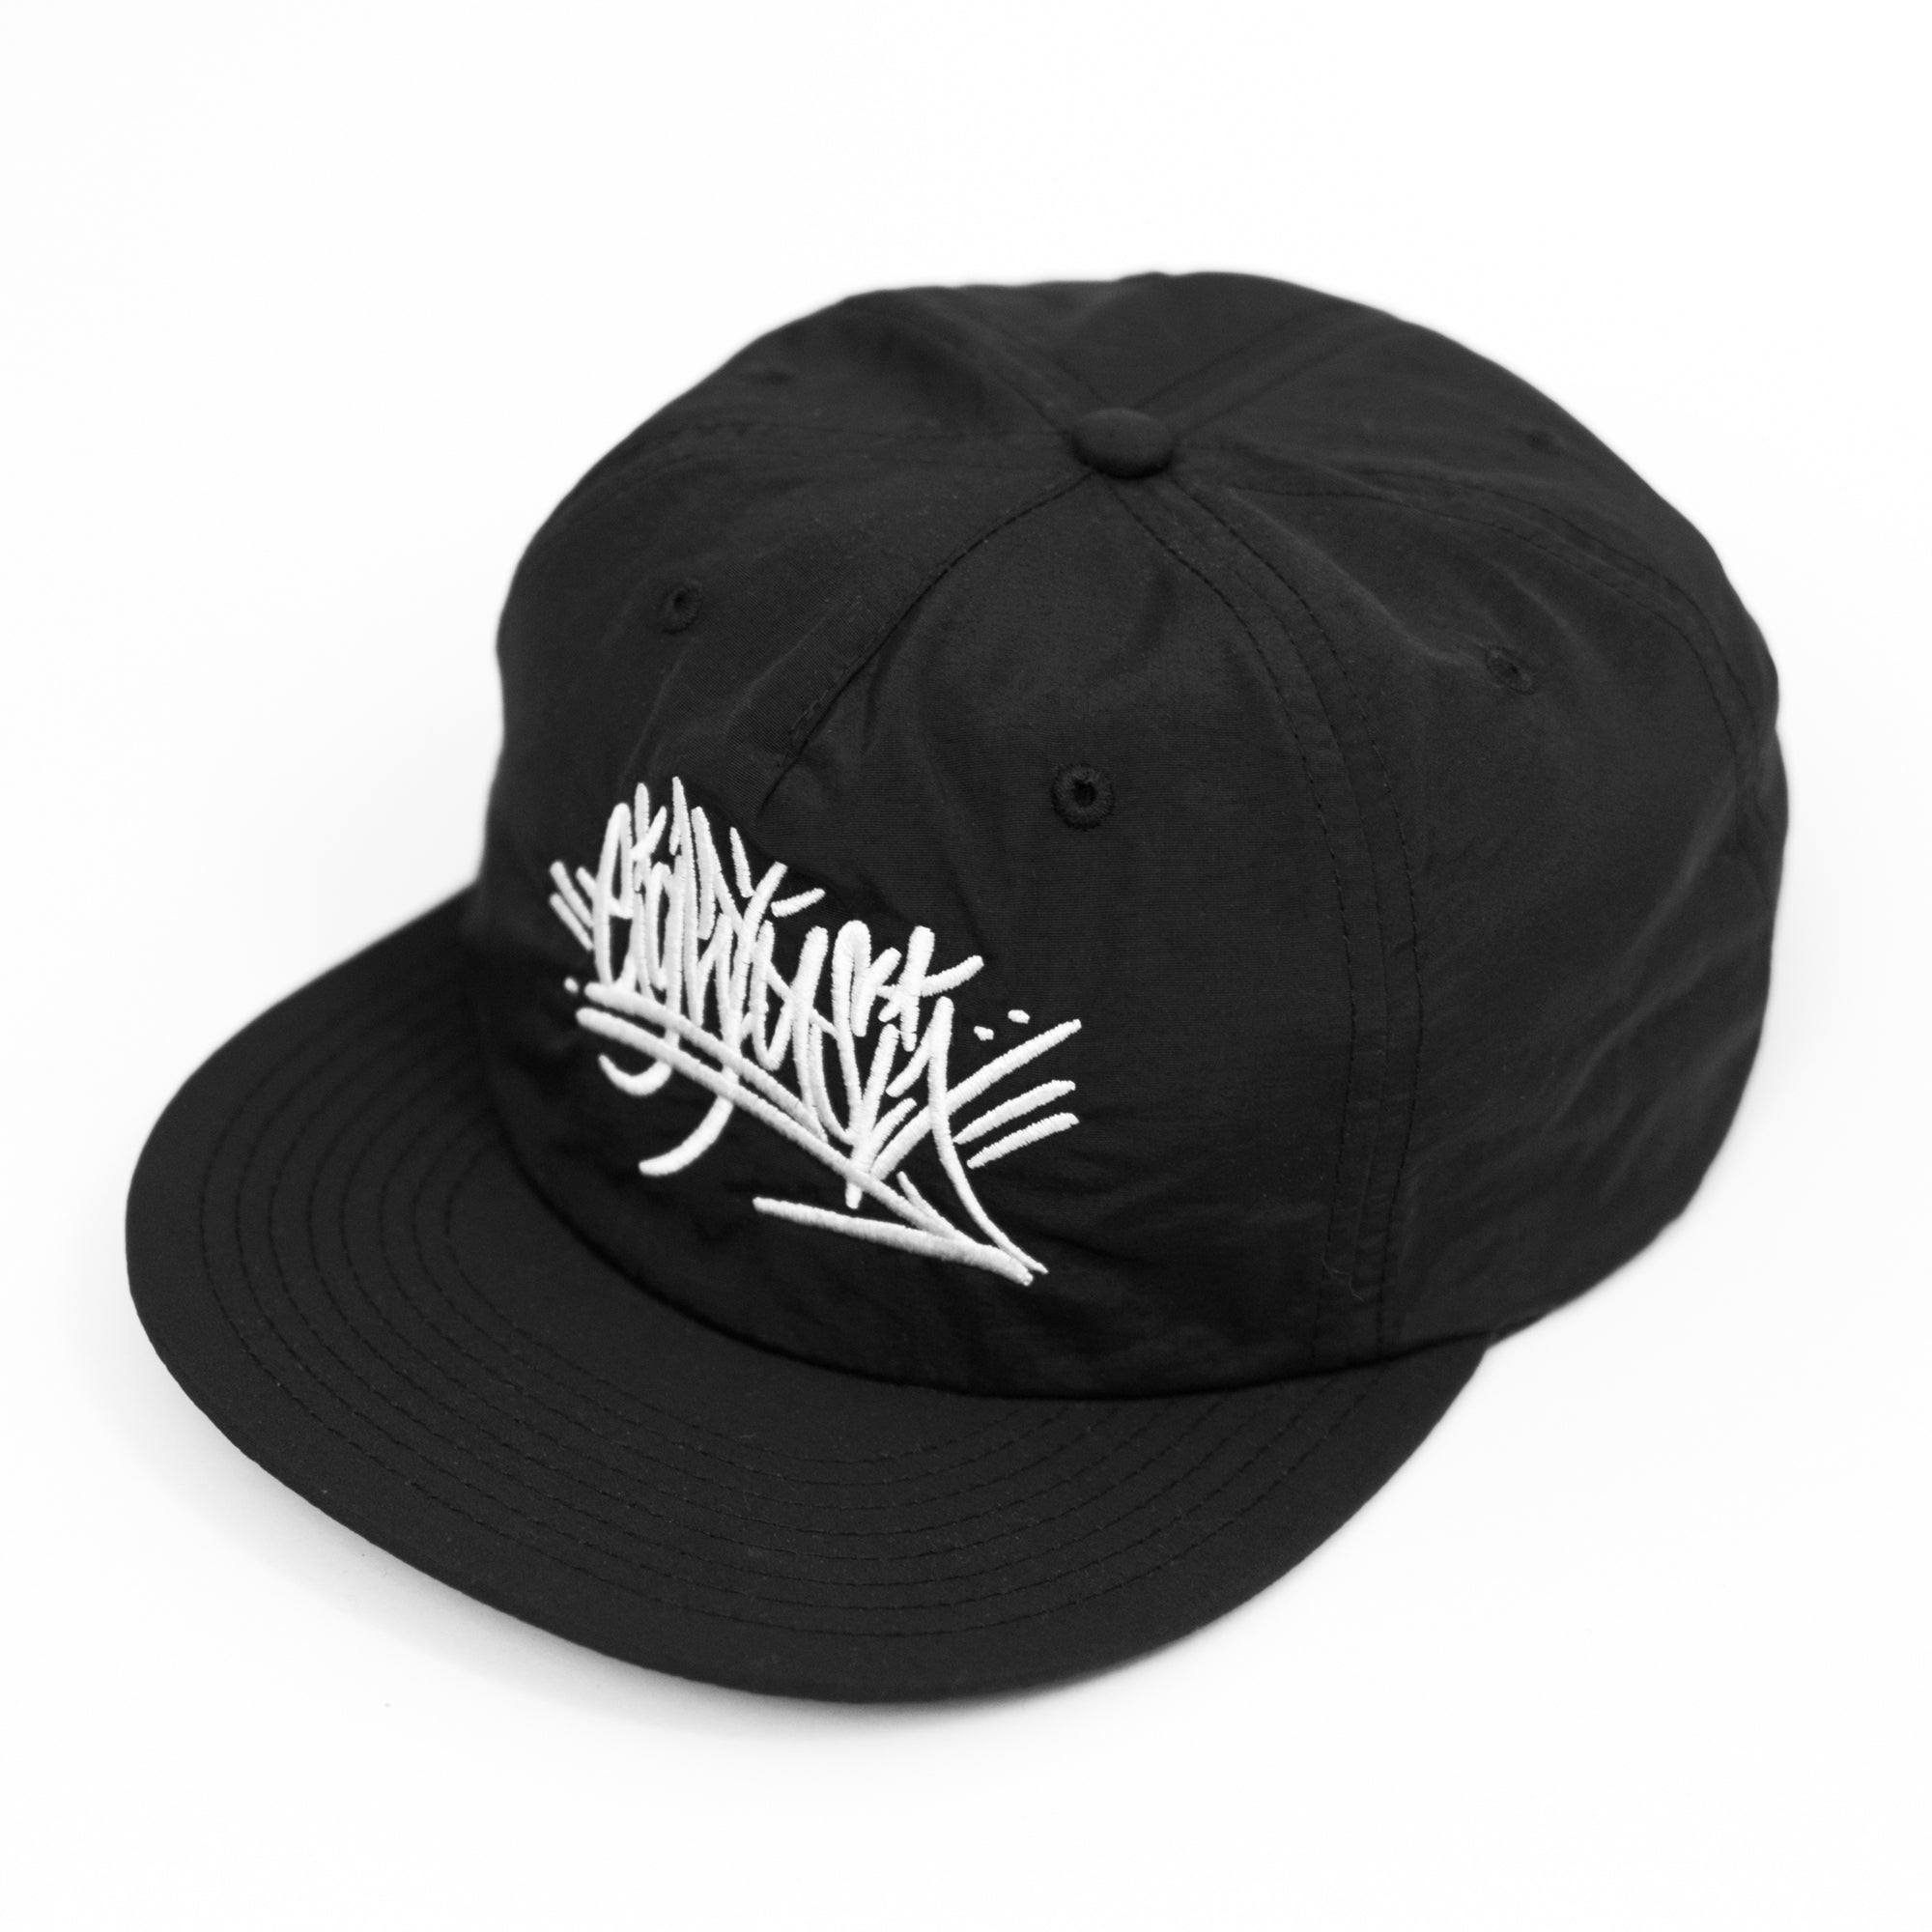 Eighty6 Graffiti Snapback - White on Black